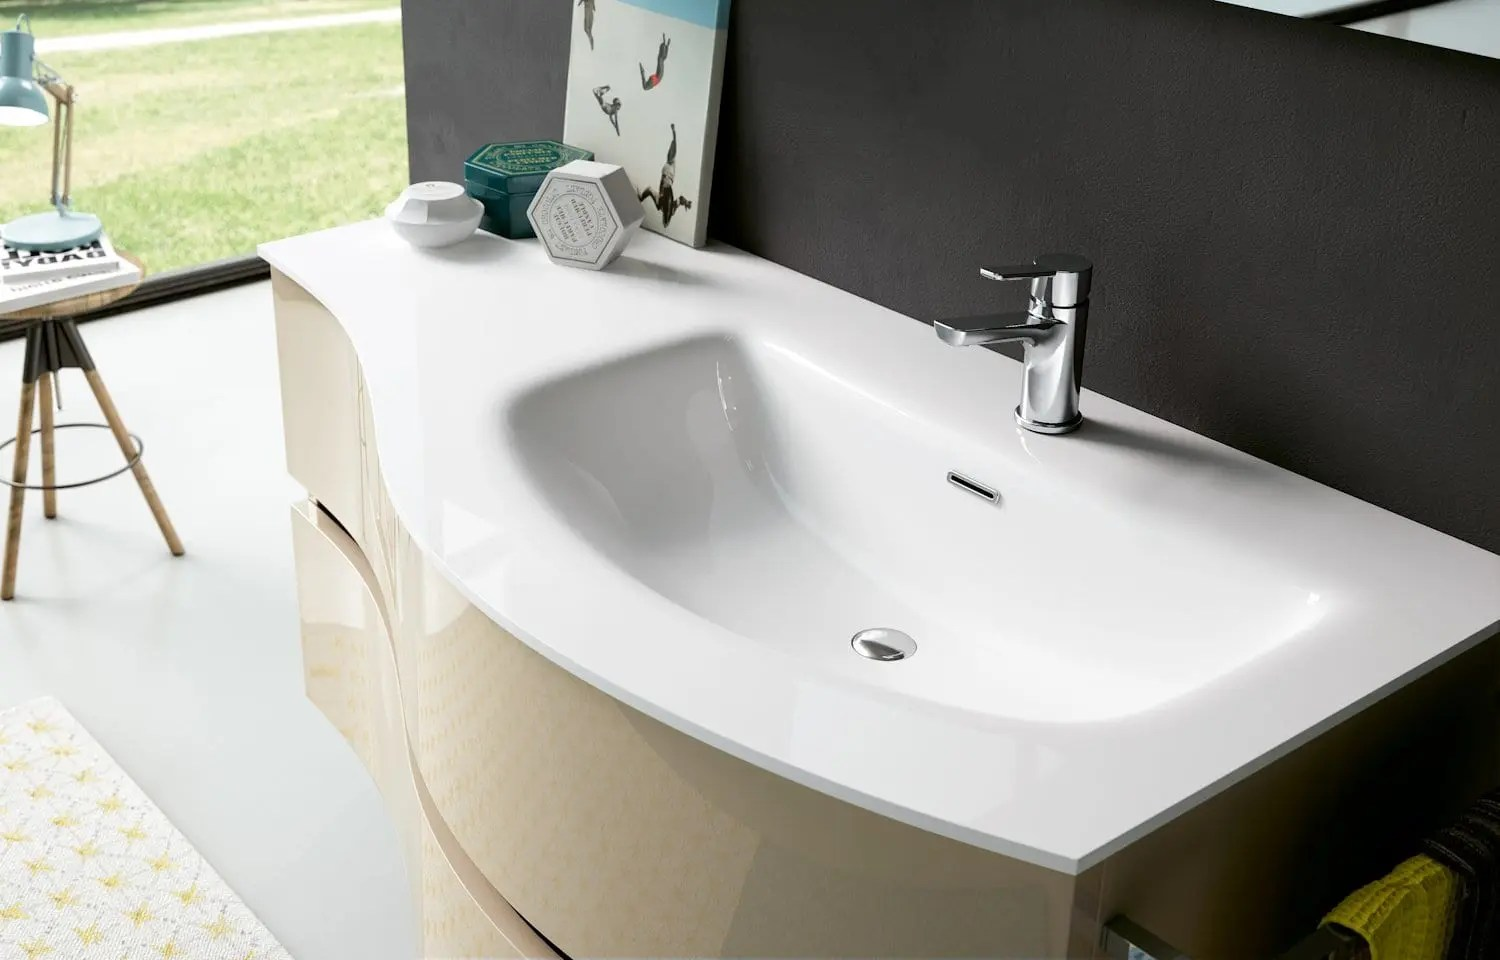 https://i0.wp.com/andhome.it/wp-content/uploads/2018/04/bagni-linea-moon-mobile-lavabo-dettaglio-B2_902-1.jpg?fit=1500%2C960&ssl=1